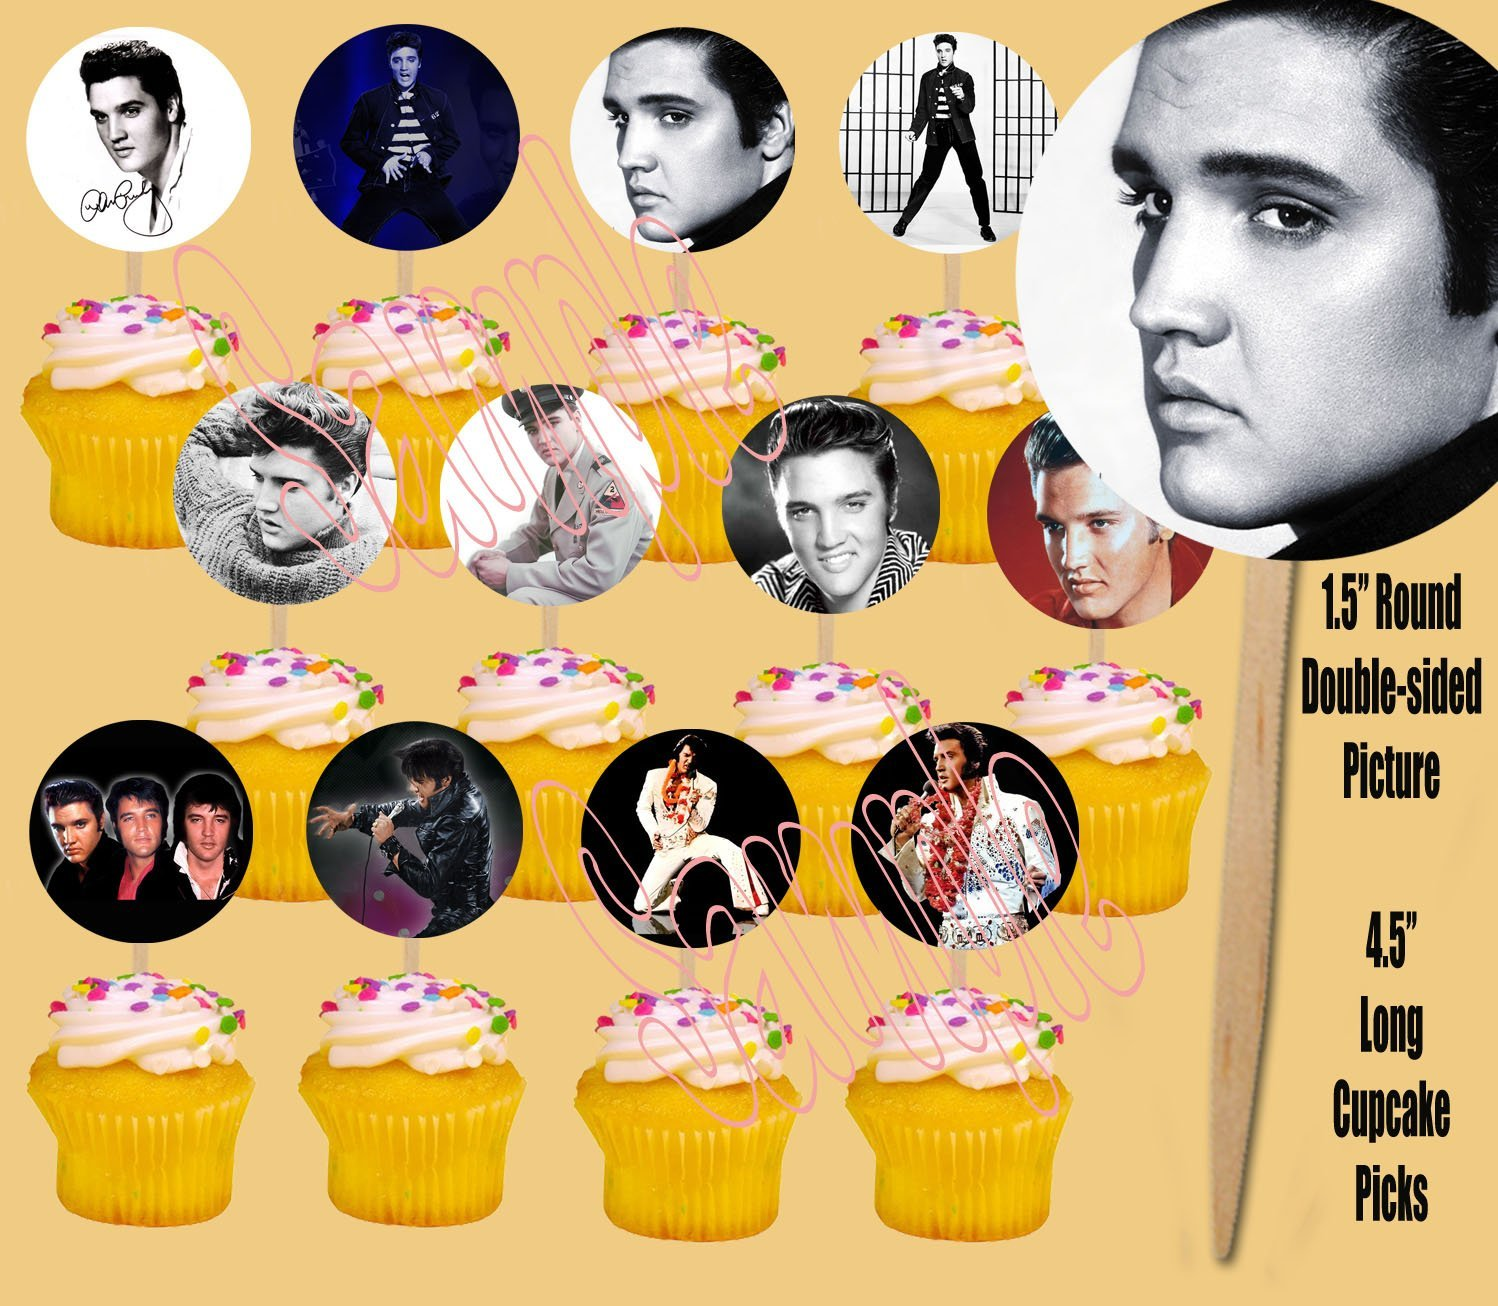 Amazon.com: Elvis Presley 12 Images Cupcake Picks Cake Topper King ...